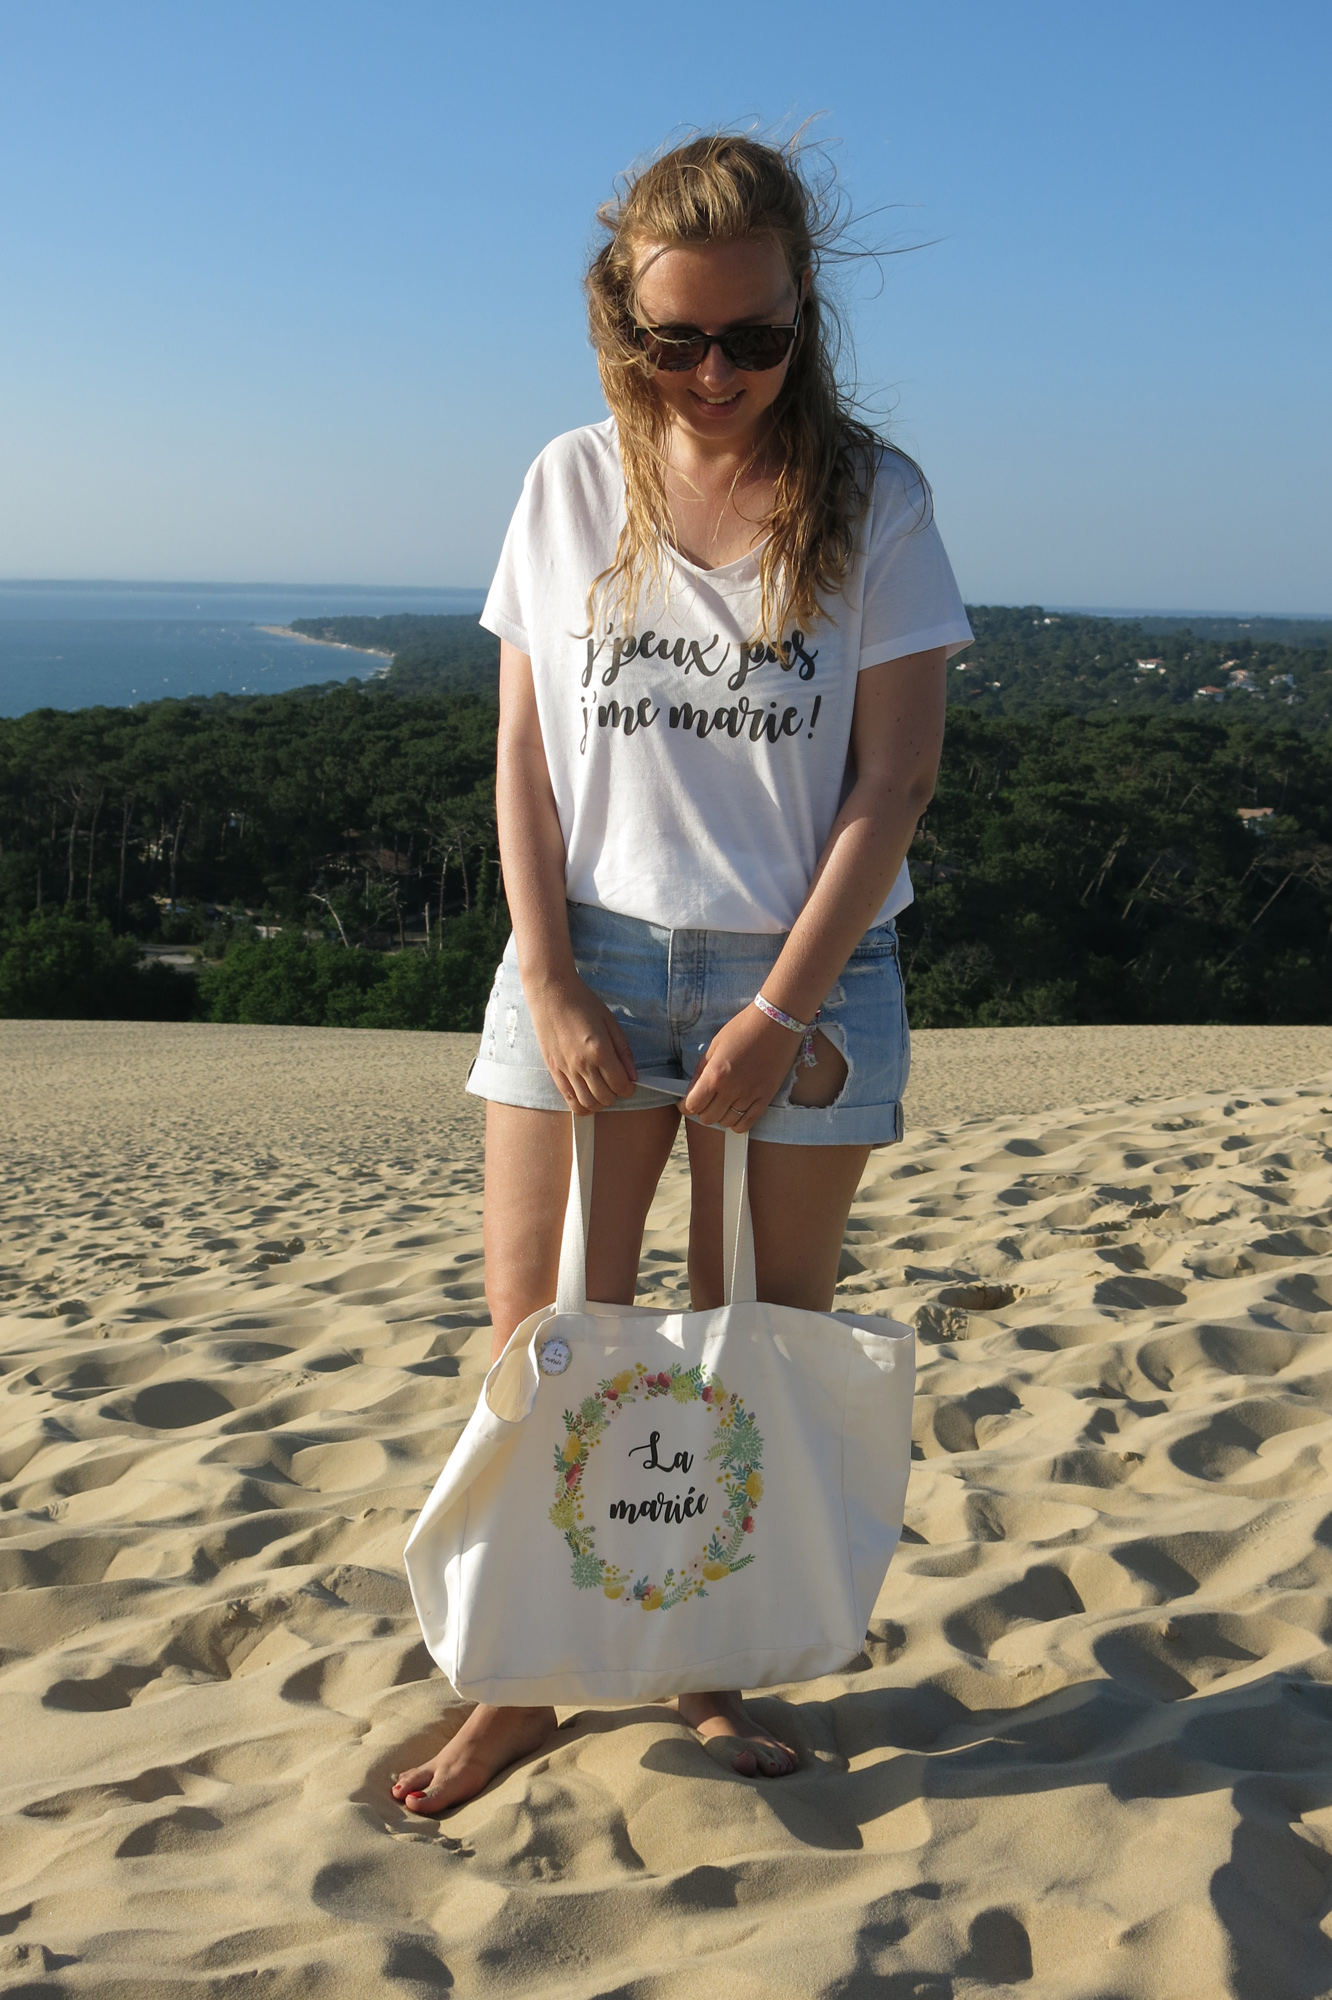 EVJF Bordeaux/Arcachon – on sunday mornings